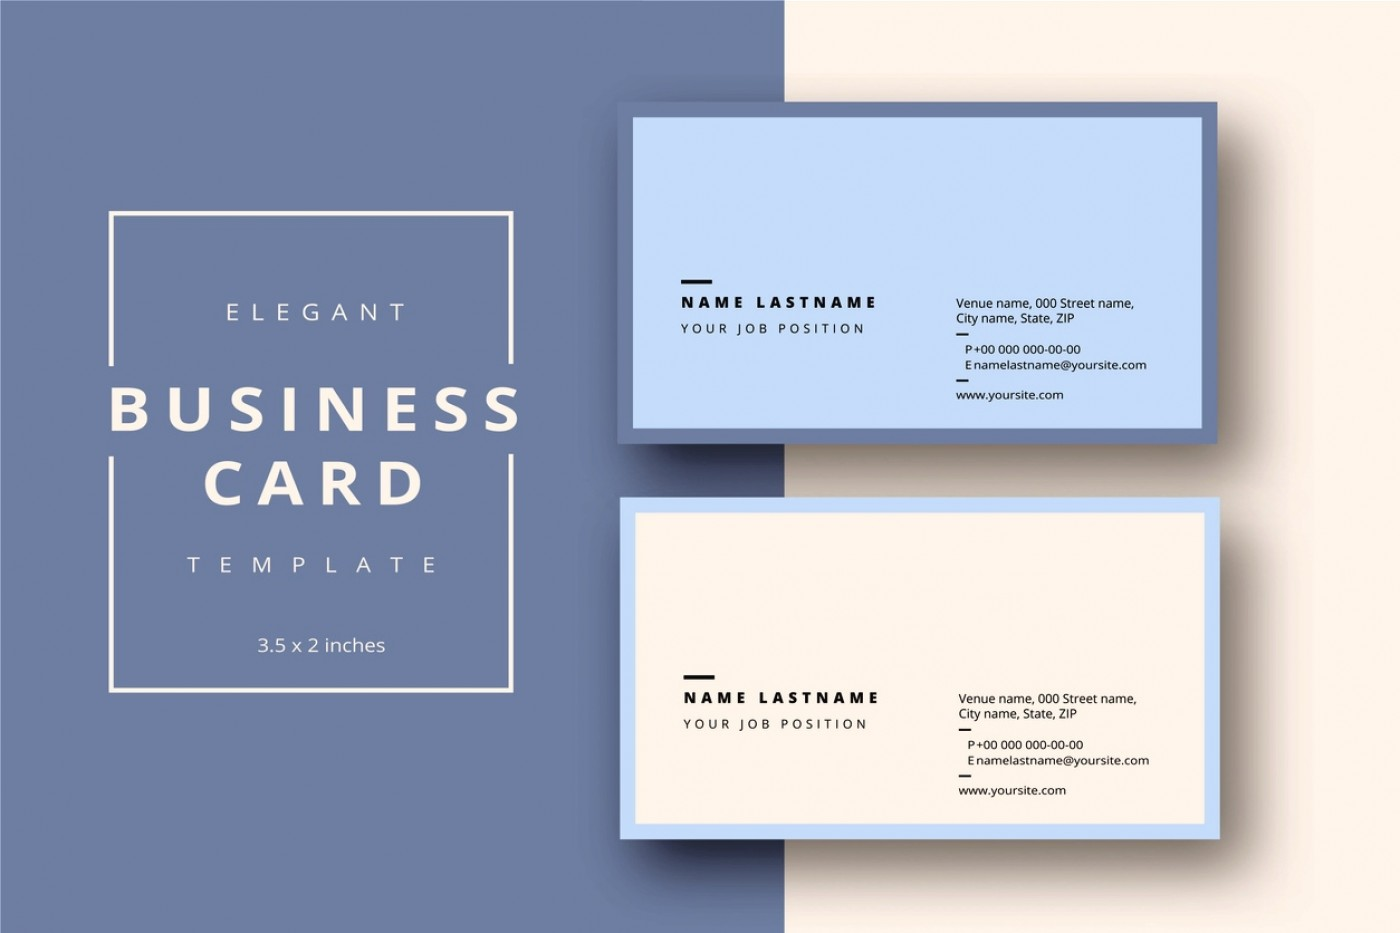 Word Busines Card Template Free Download  Microsoft 2007 Double Sided Blank1400